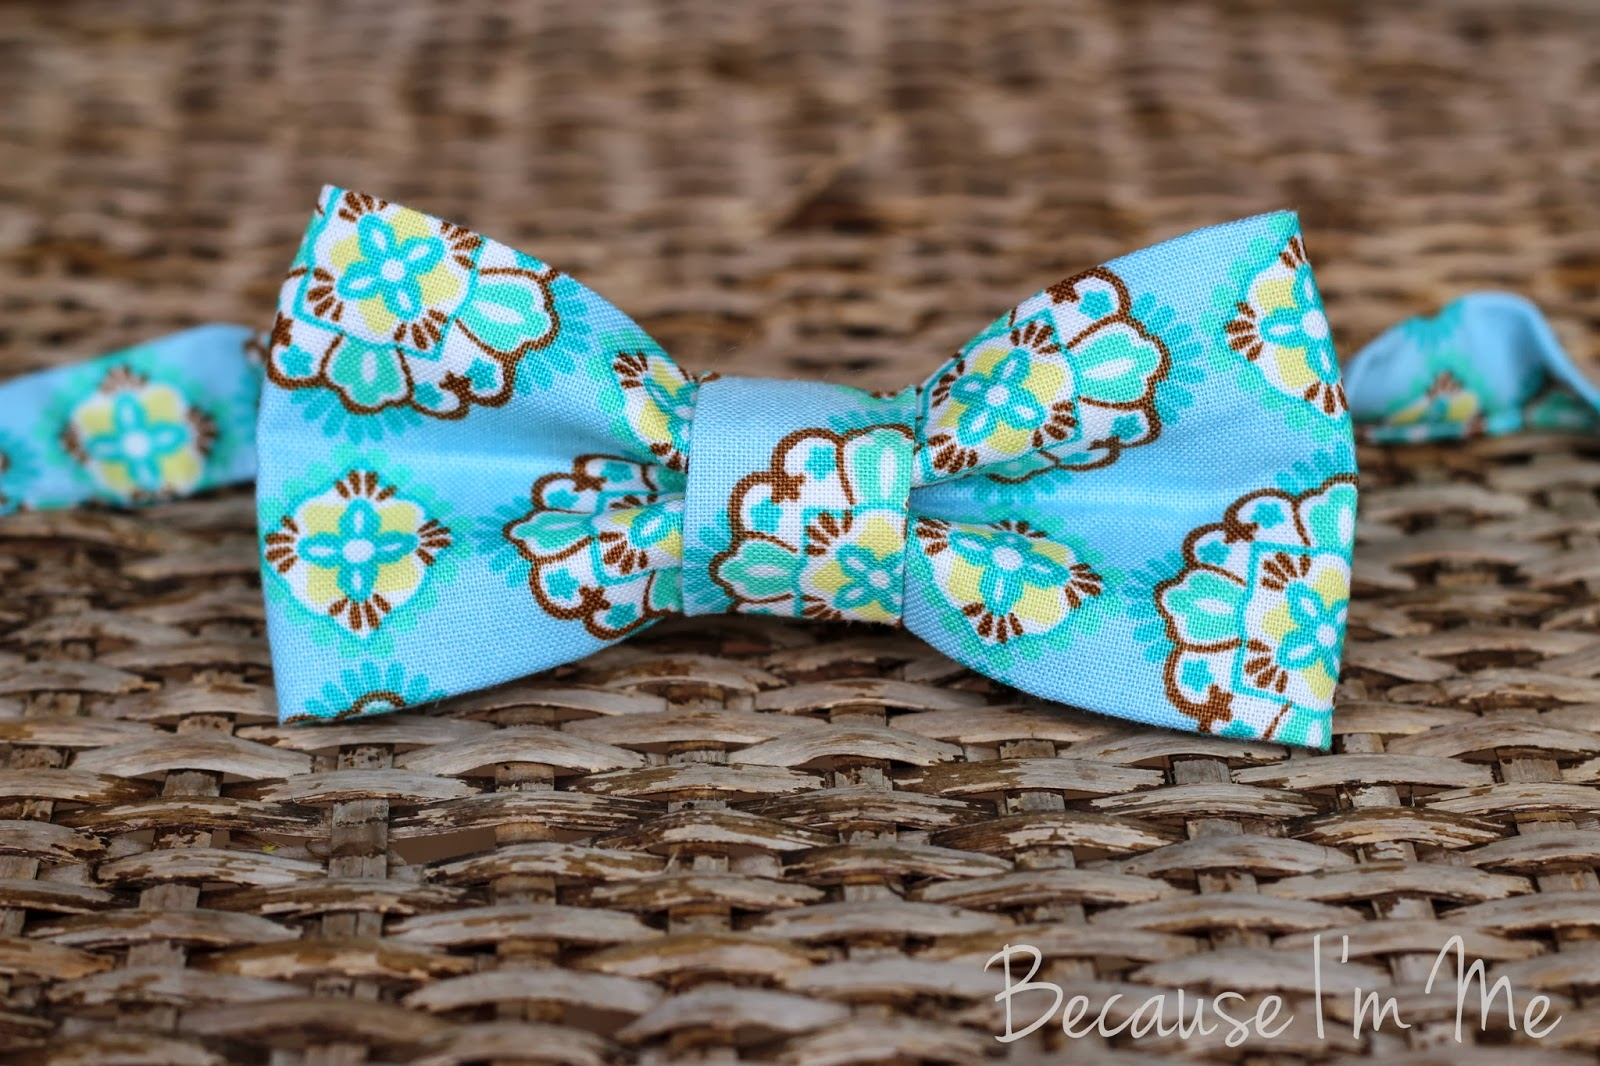 Because I'm Me infants, boys, and mens blue geometric print bow tie